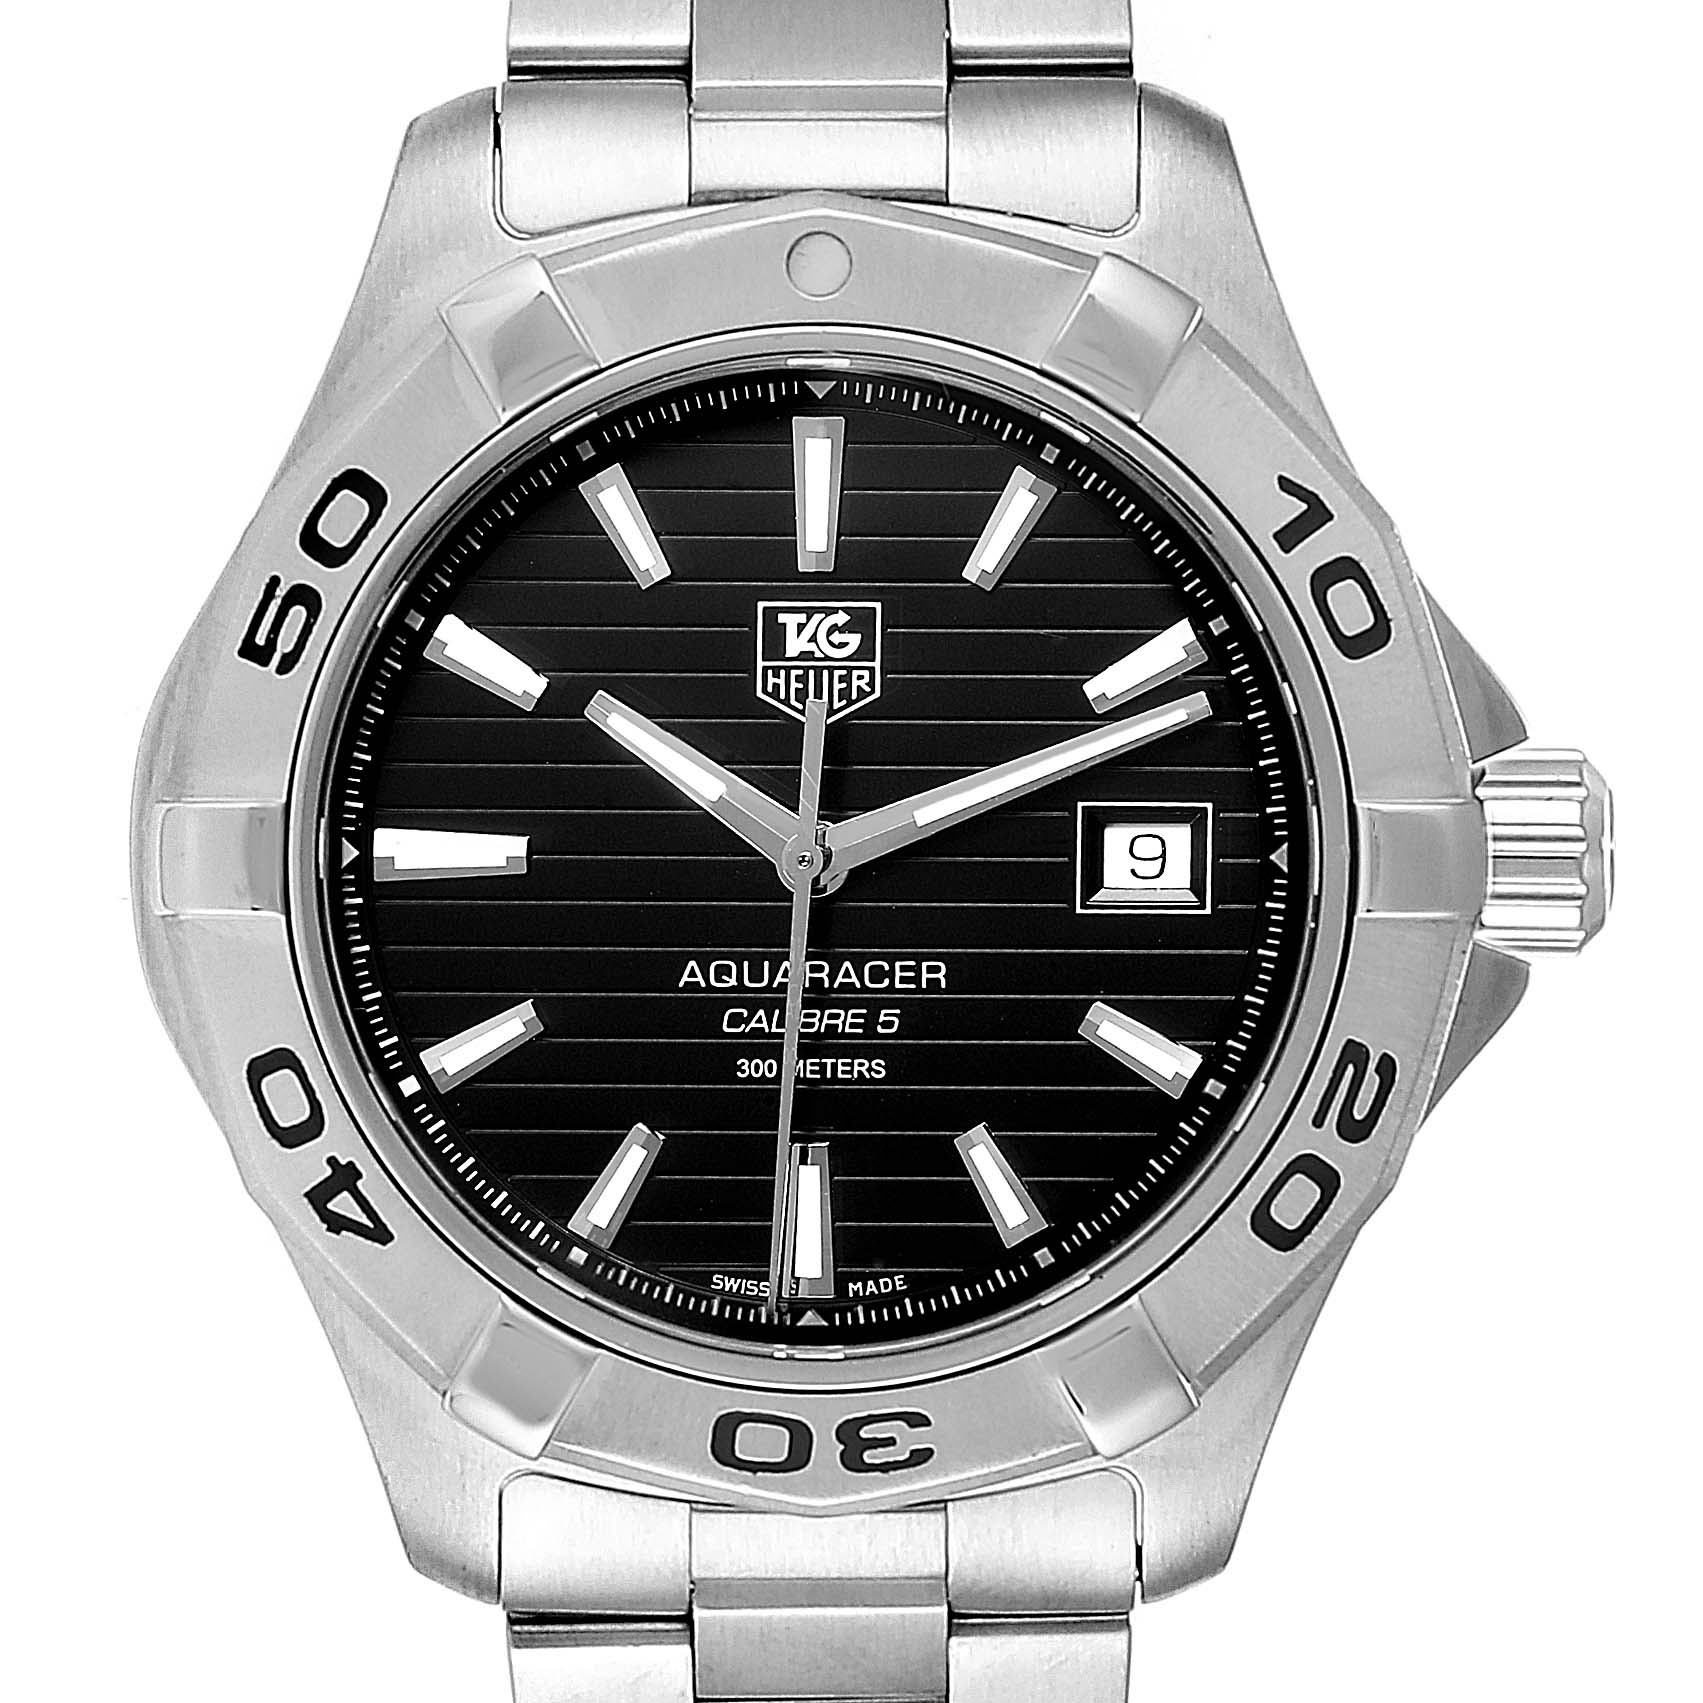 Photo of Tag Heuer Aquaracer Black Dial Automatic Steel Mens Watch WAY2110 Box